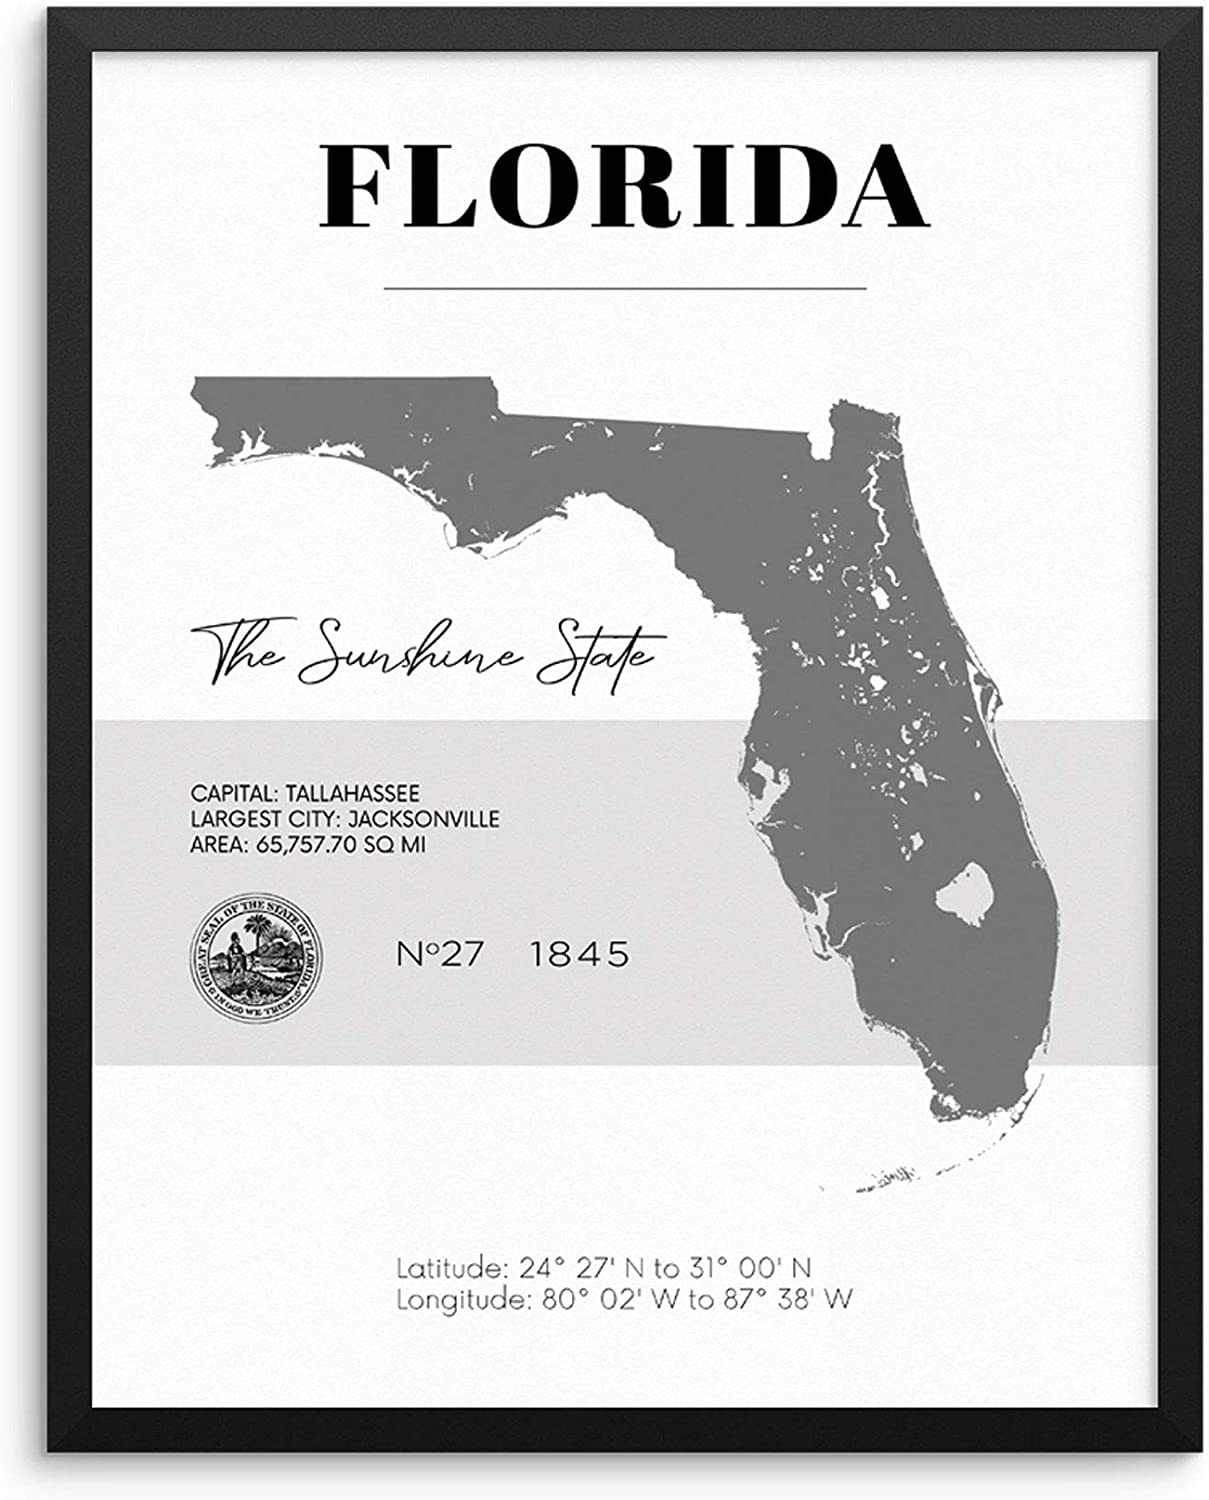 Florida State Map Poster With Demographics Minimalist Home Decor Travel Art  Print 20x20 UNFRAMED Trendy Artwork for Bedroom Living Room Entryway ...